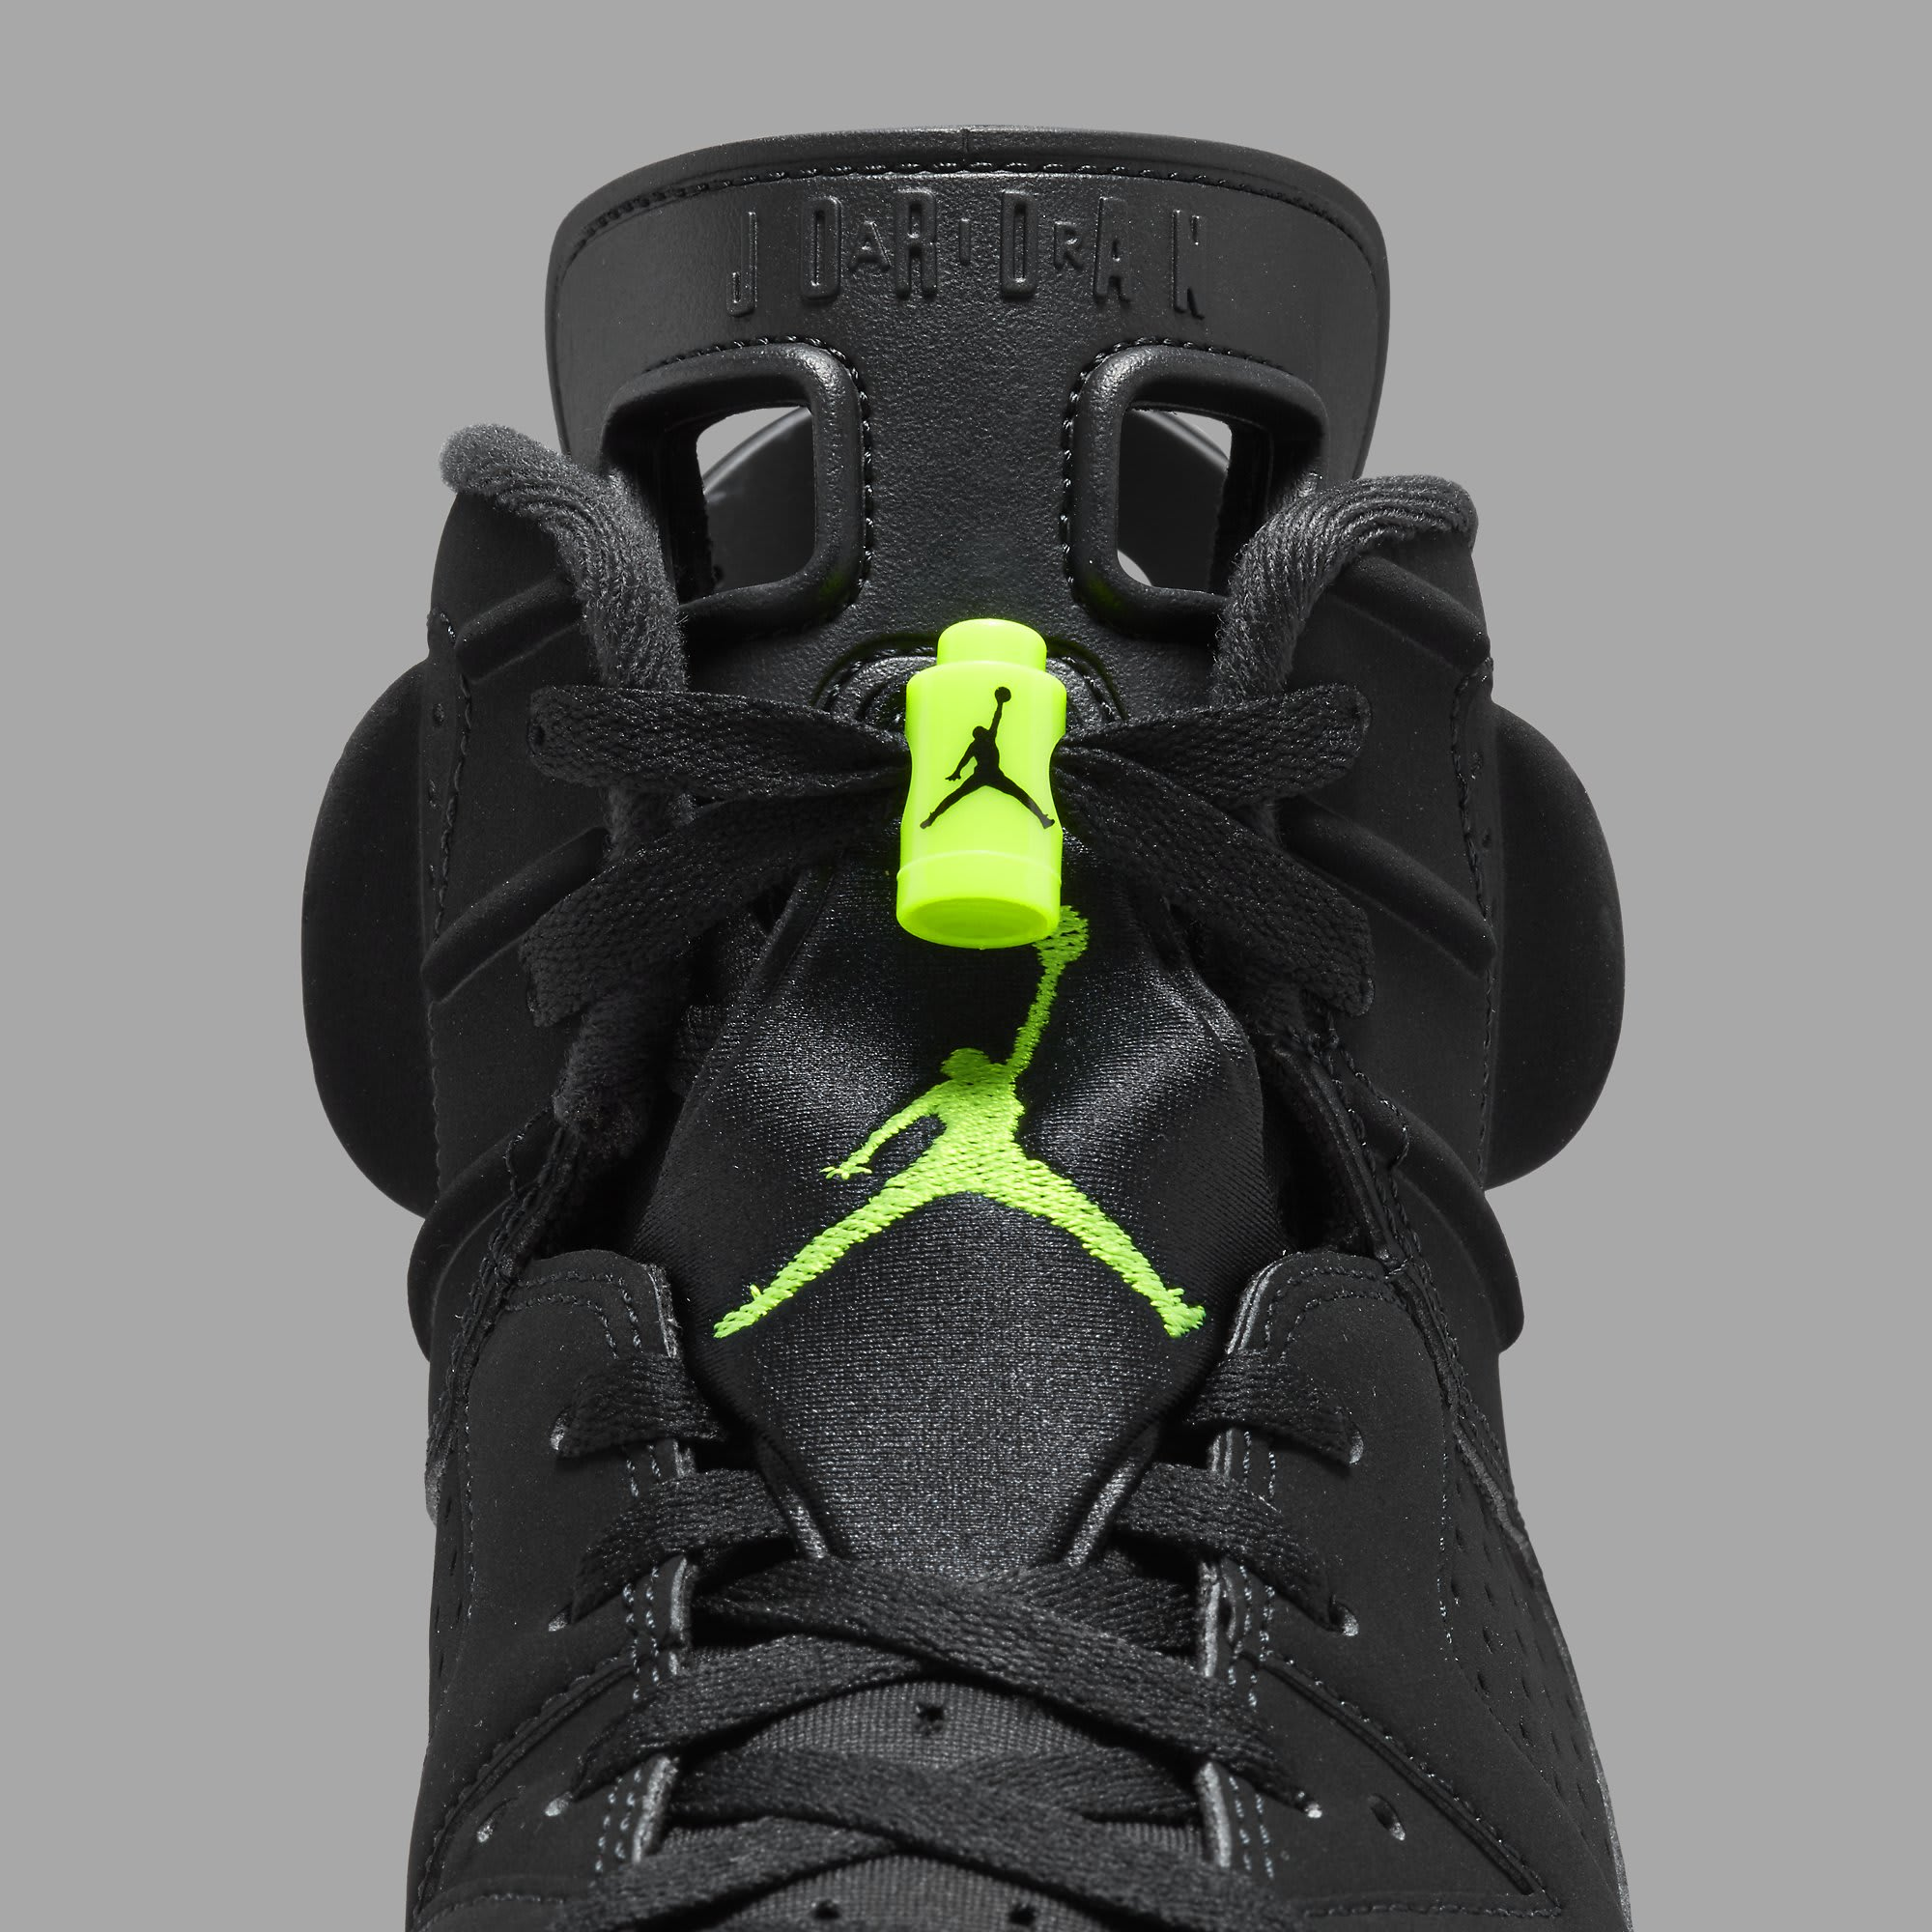 Air Jordan 6 Retro 'Electric Green' CT8529-003 Tongue